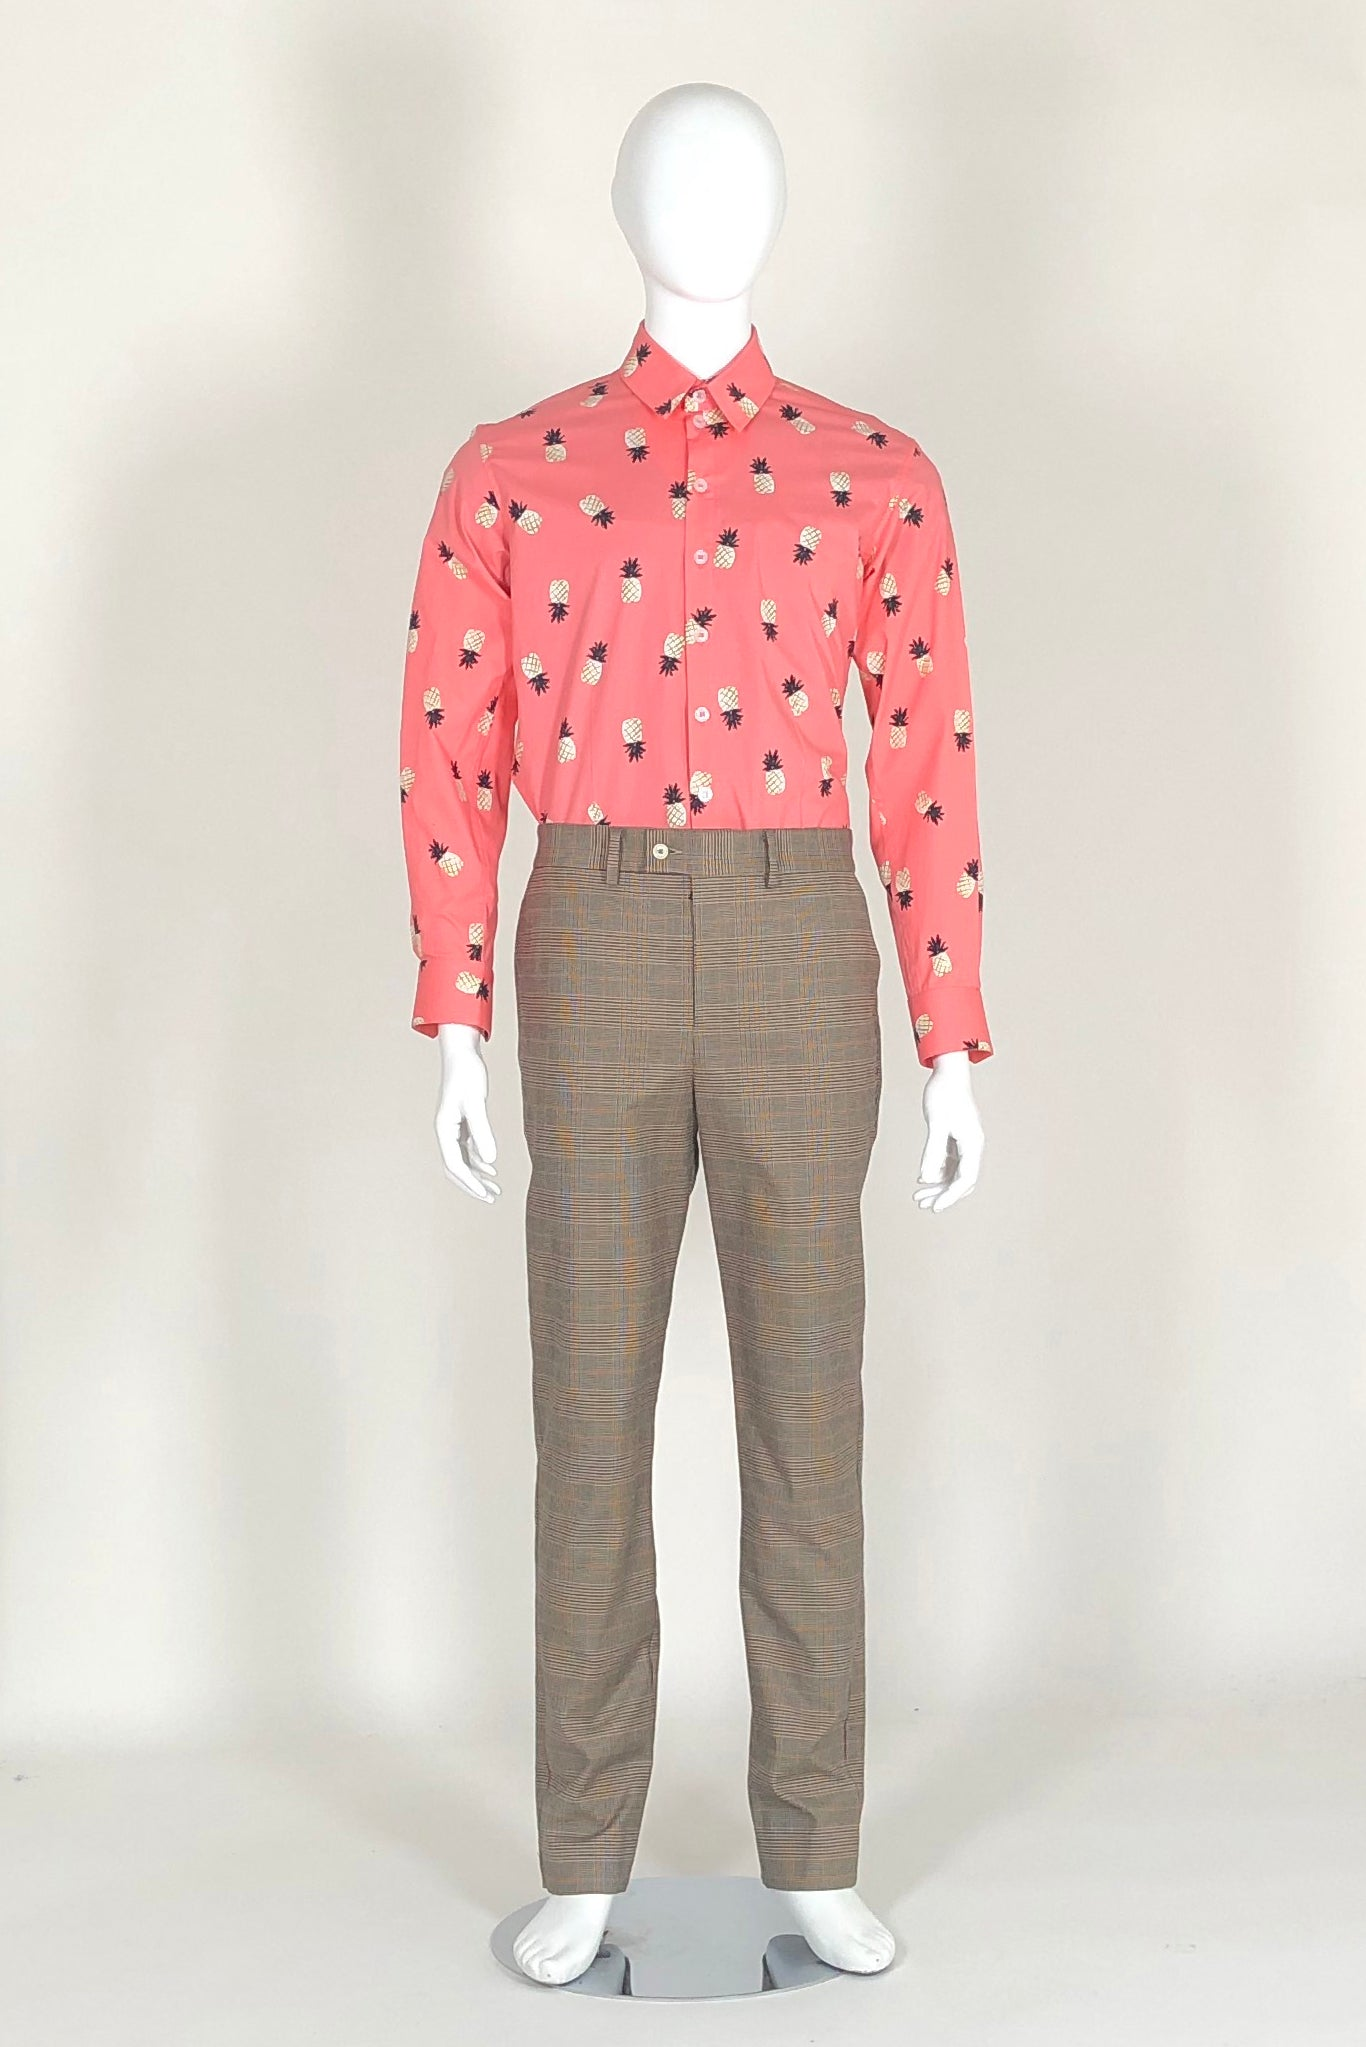 WORLDman 4653 Tarkovsky Trouser Check